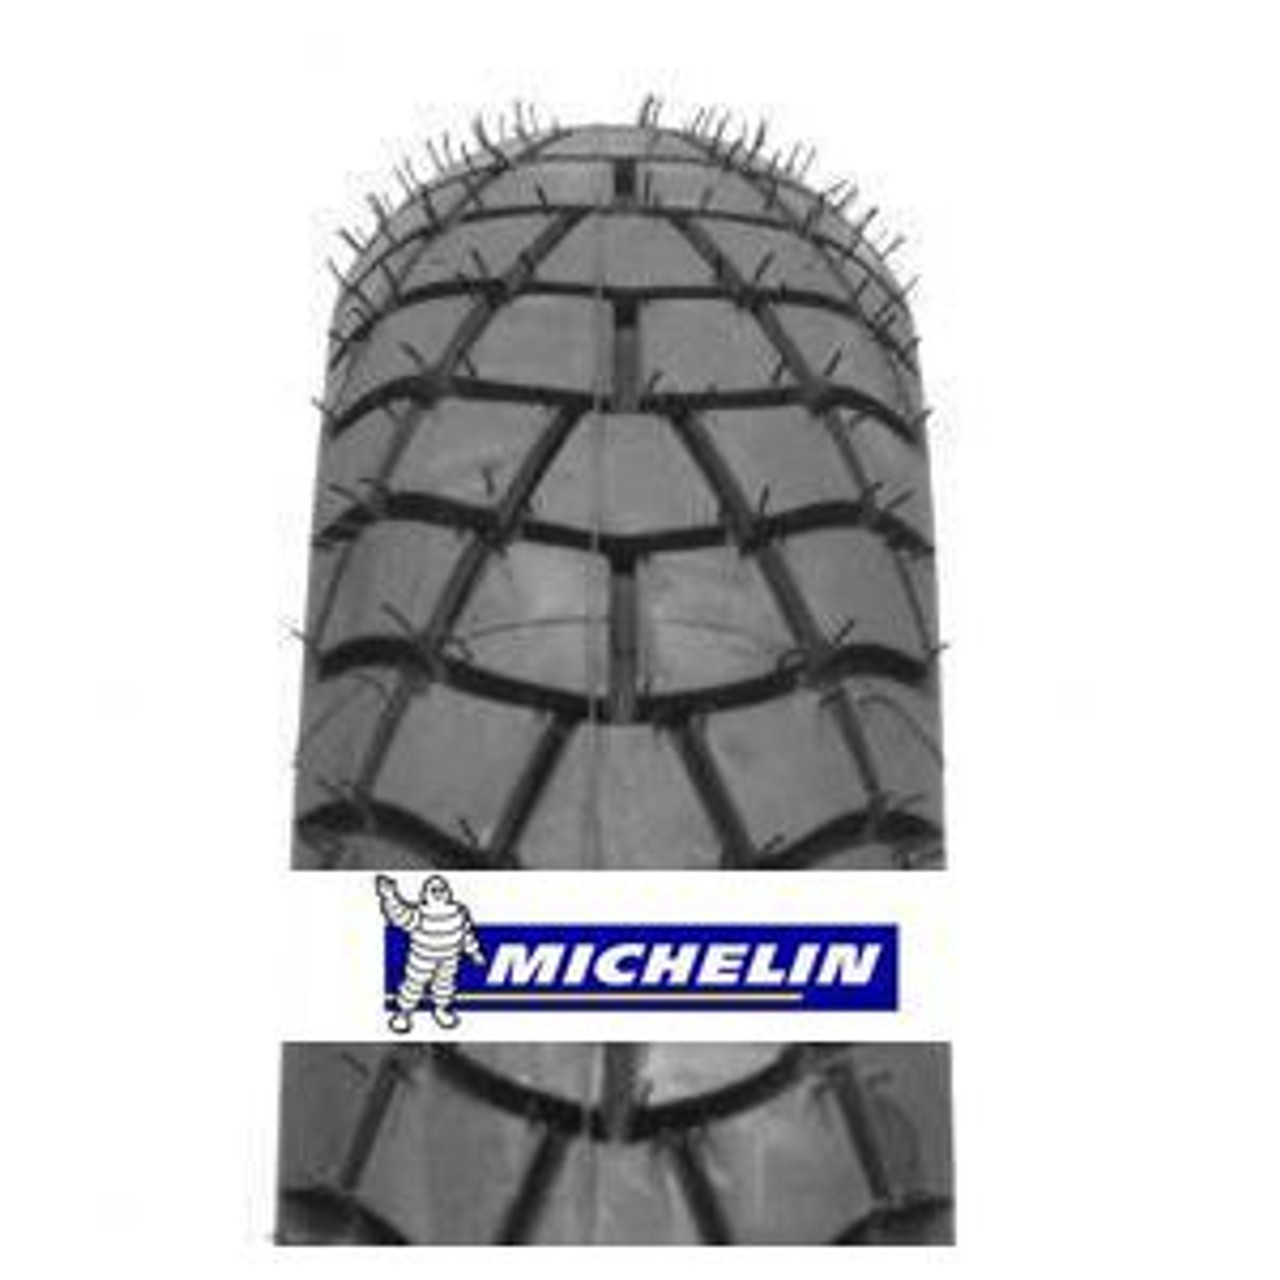 "Michelin M45 2.25"" x 17"" Moped Tire"